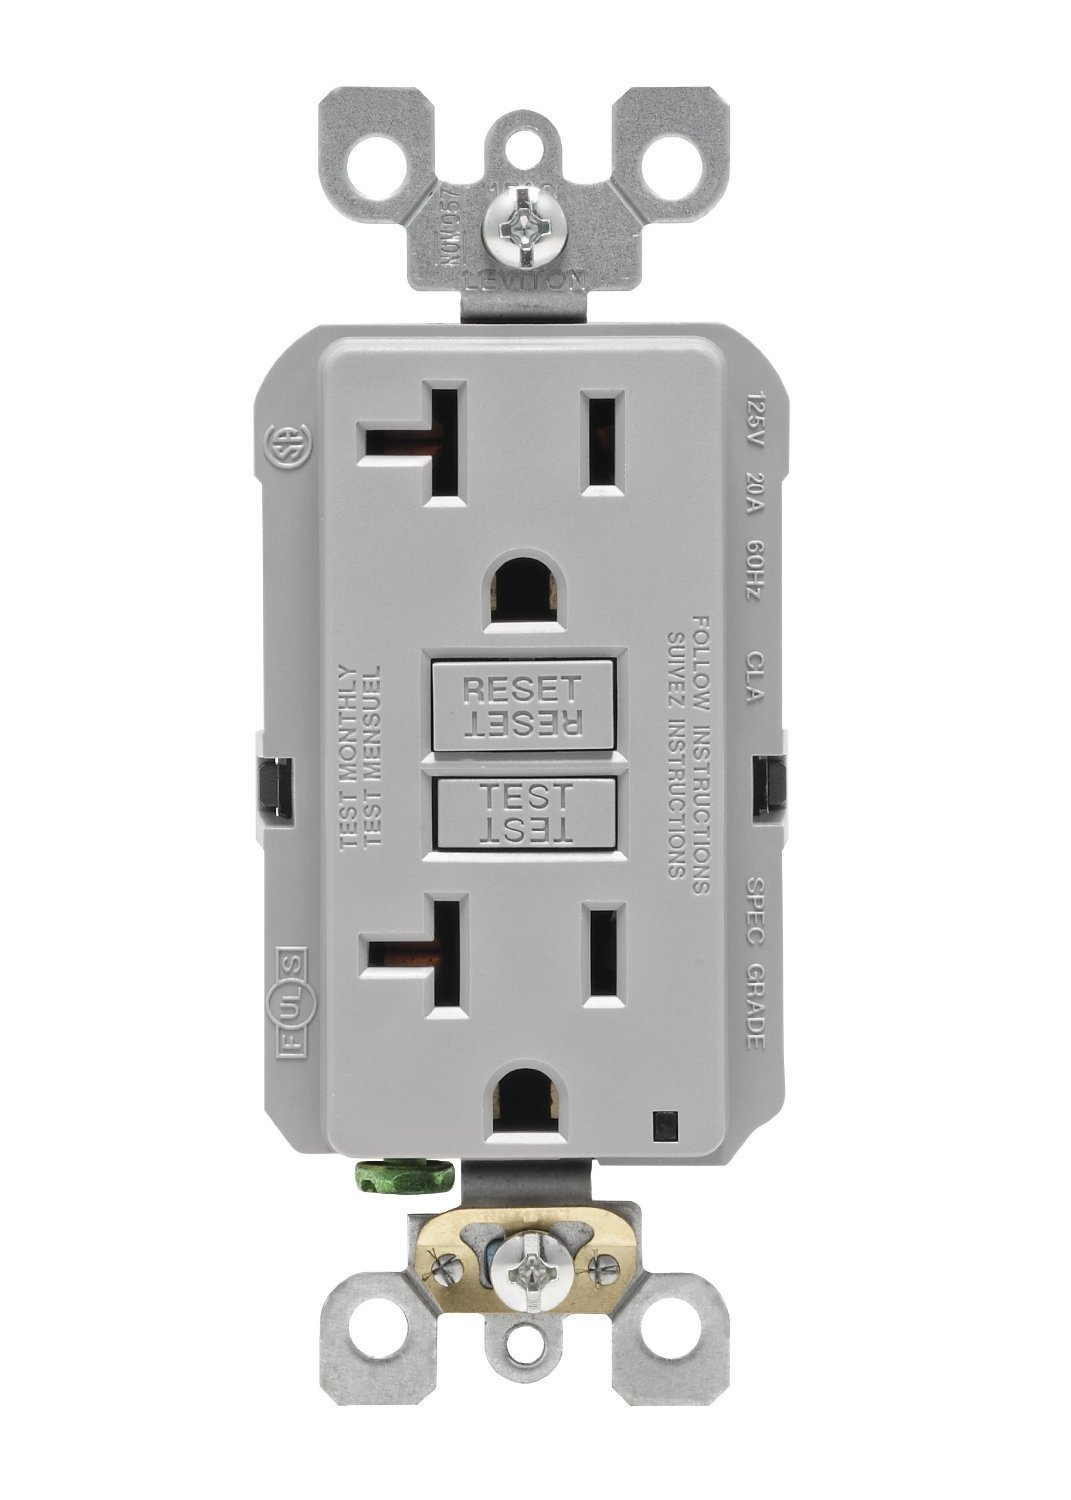 Leviton GFNT2-GY Self-Test Smartlockpro Slim GFCI Non-Tamper-Resistant Receptacle with LED Indicator, 20-Amp, 10 Pack, Gray by Leviton